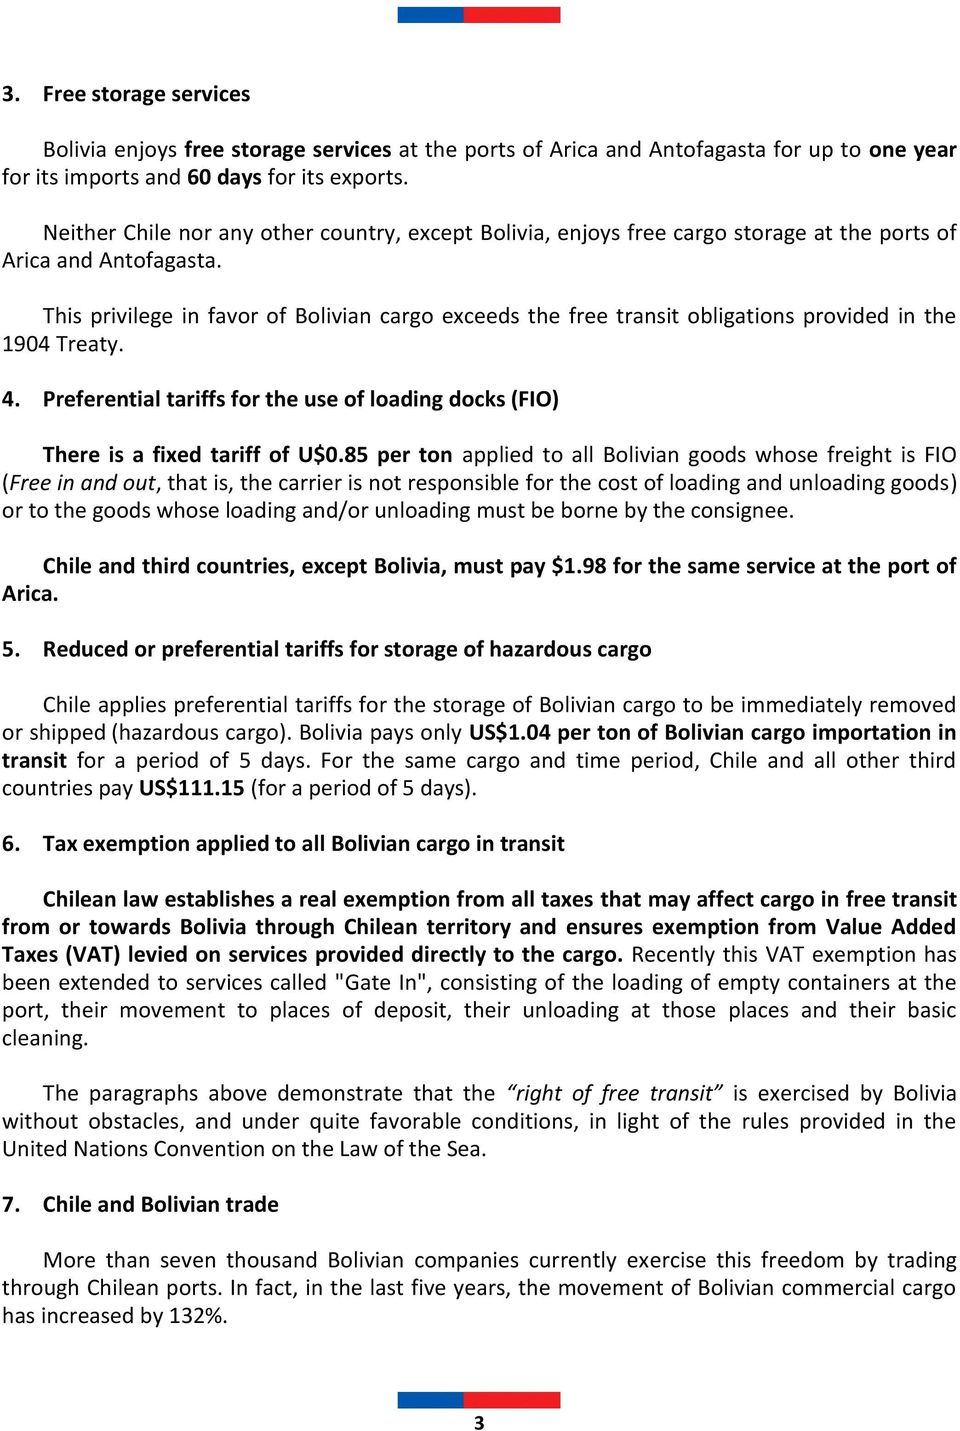 This privilege in favor of Bolivian cargo exceeds the free transit obligations provided in the 1904 Treaty. 4. Preferential tariffs for the use of loading docks (FIO) There is a fixed tariff of U$0.